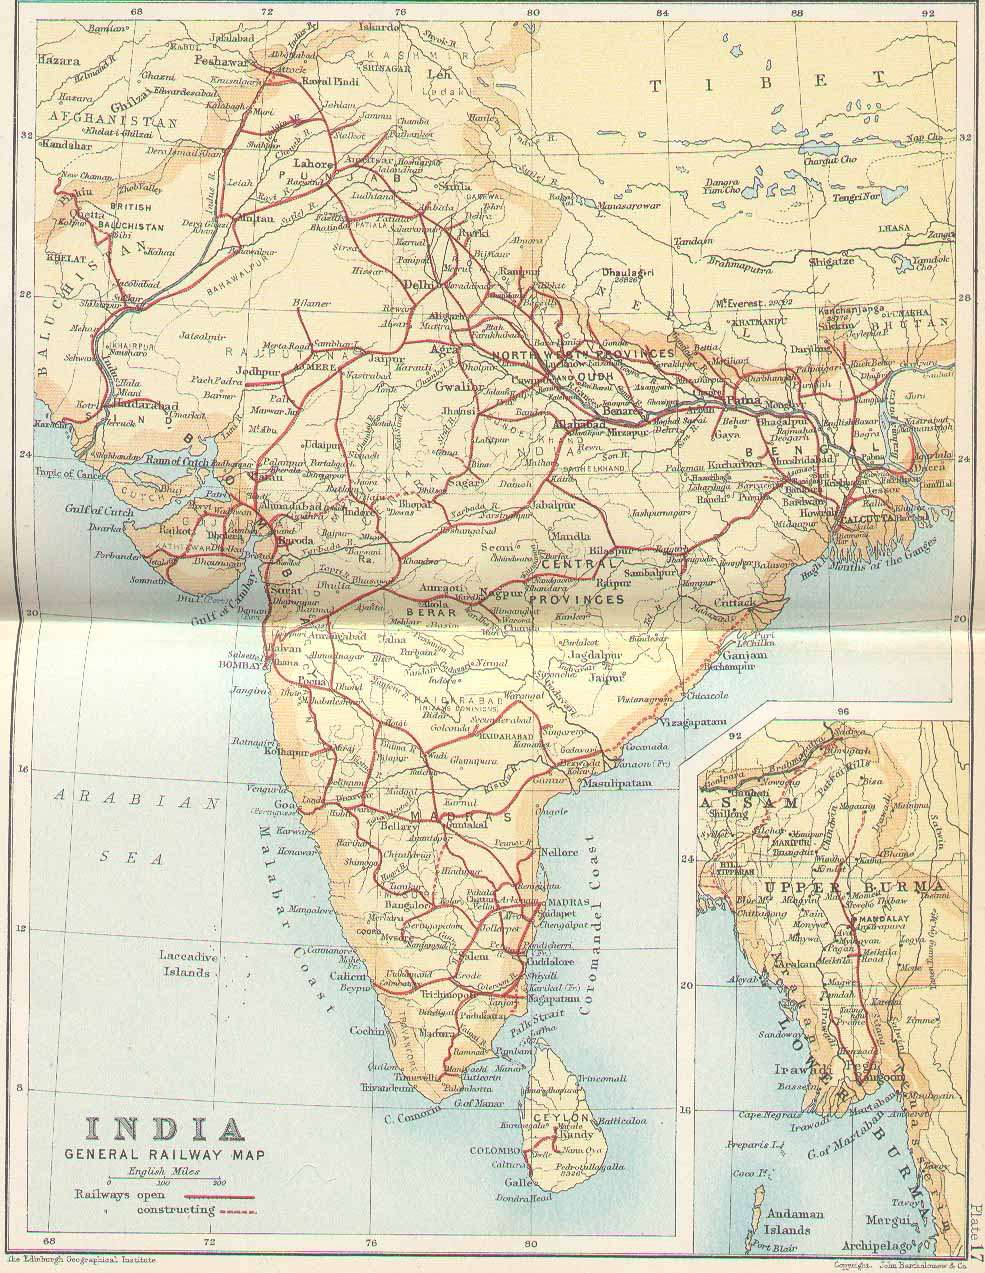 India Train Rail Maps - 1800s world map